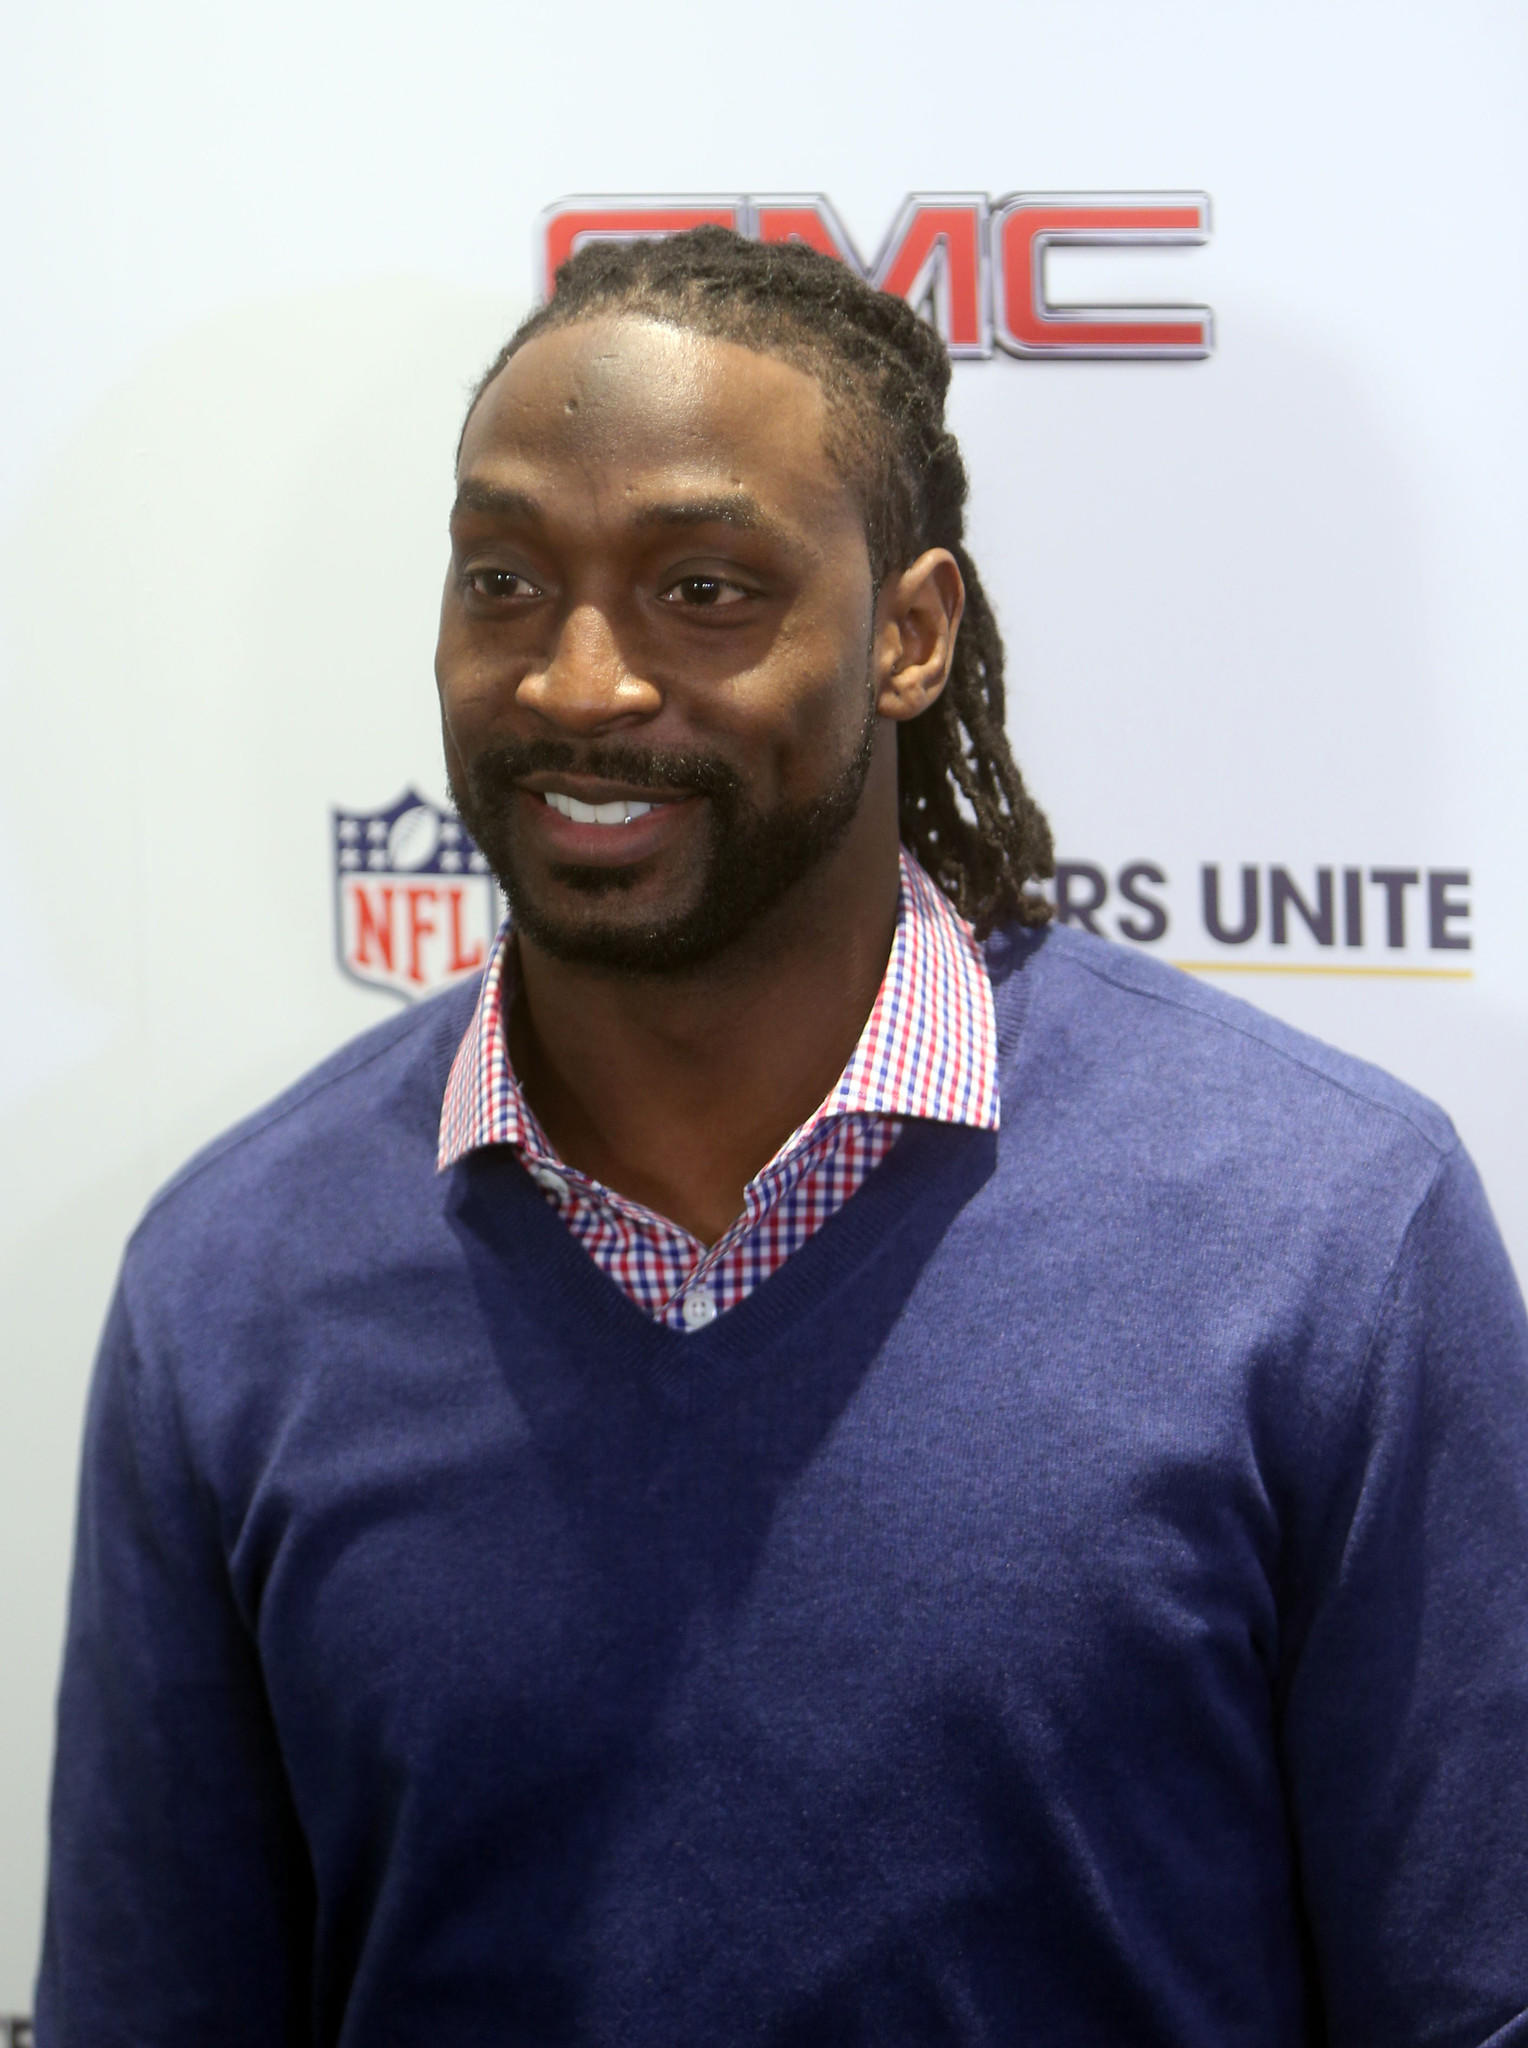 Chicago Bears cornerback Charles Tillman on the red carpet during the Characters Unite event in advance of Super Bowl XLVIII.